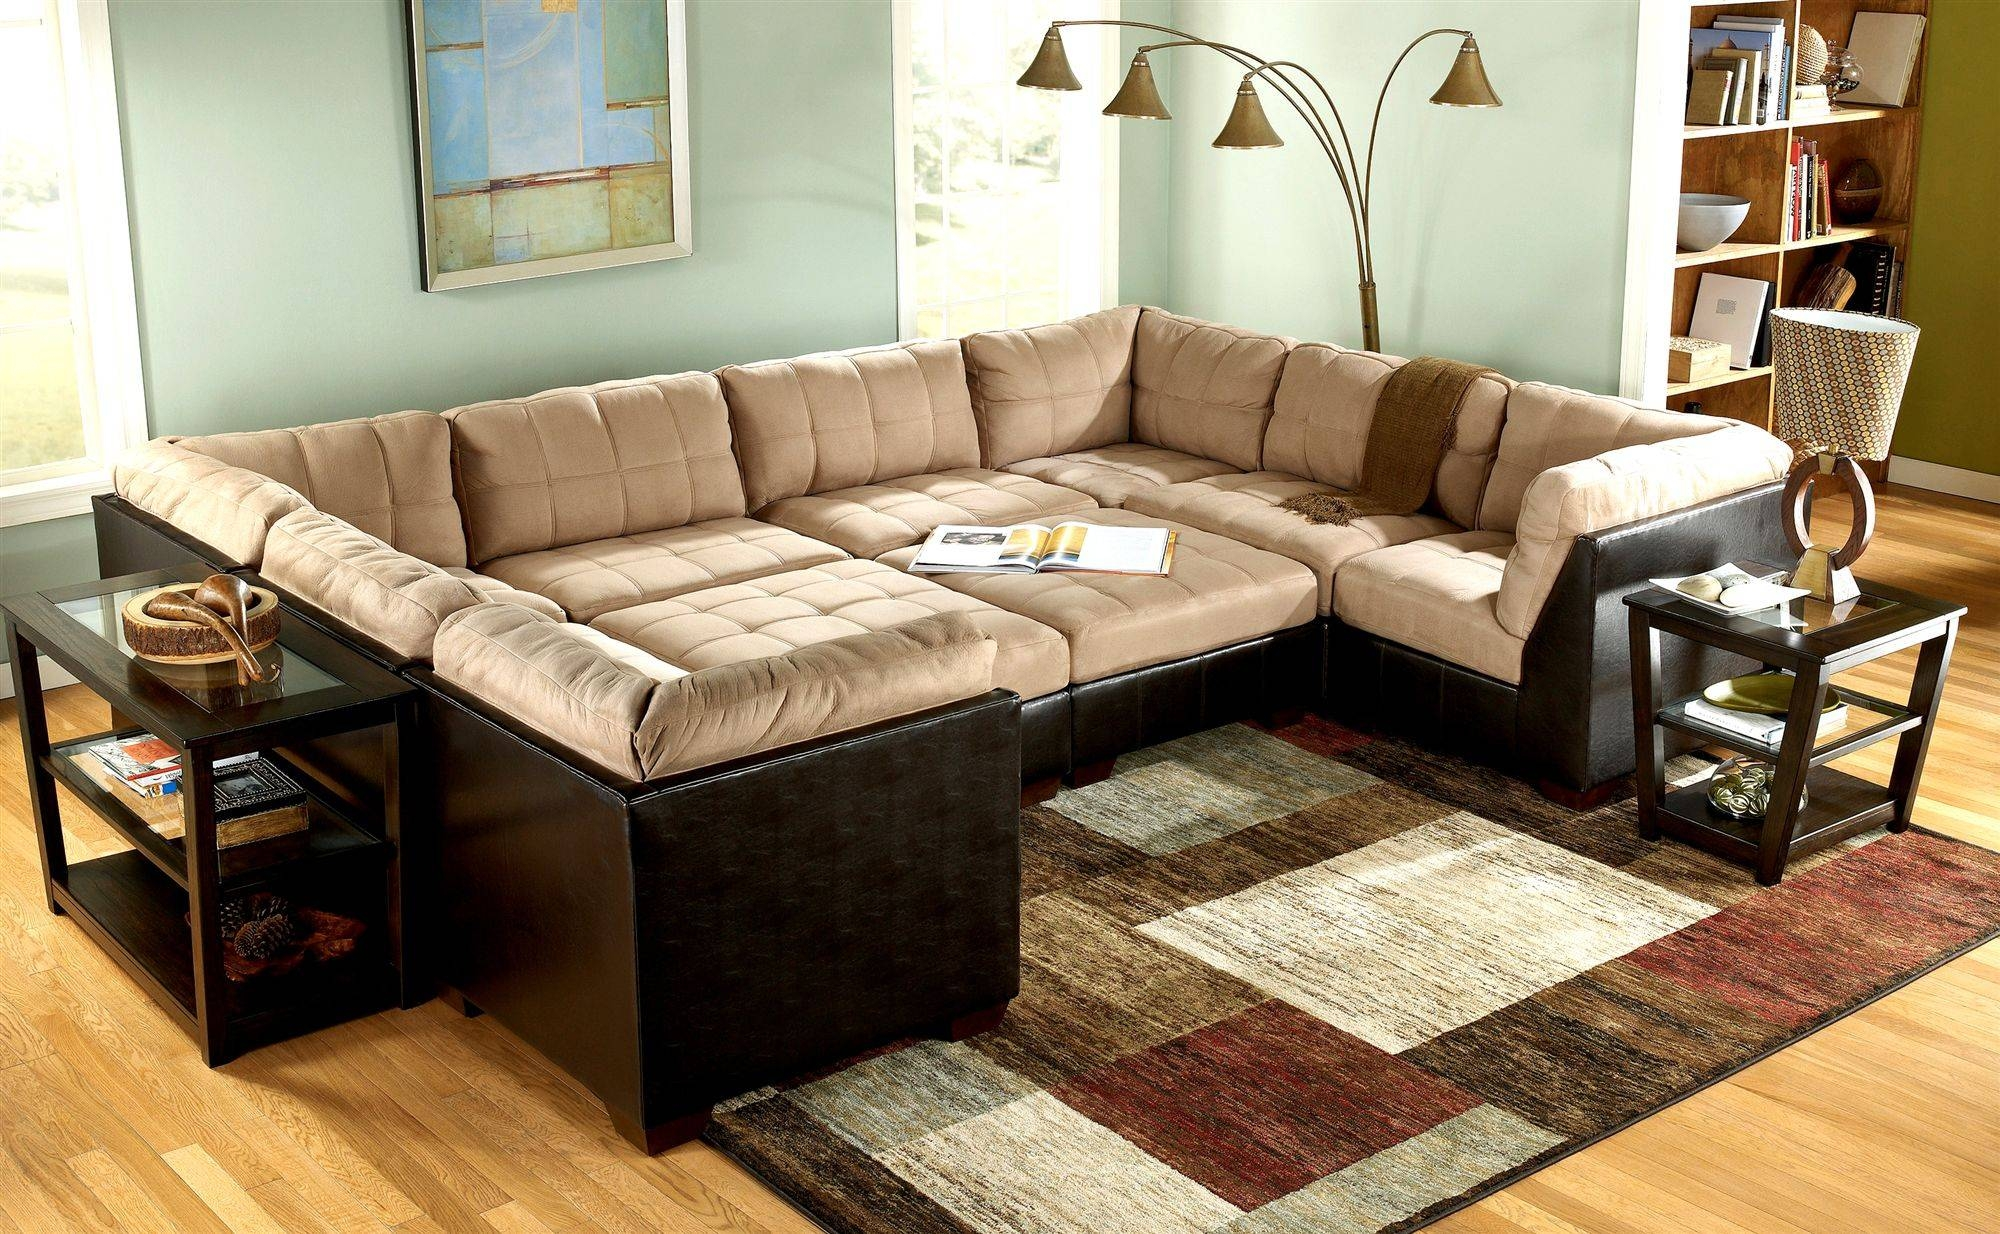 Furniture: Great Pit Sectional For Living Room Furniture Ideas intended for 10 Piece Sectional Sofa (Image 14 of 30)